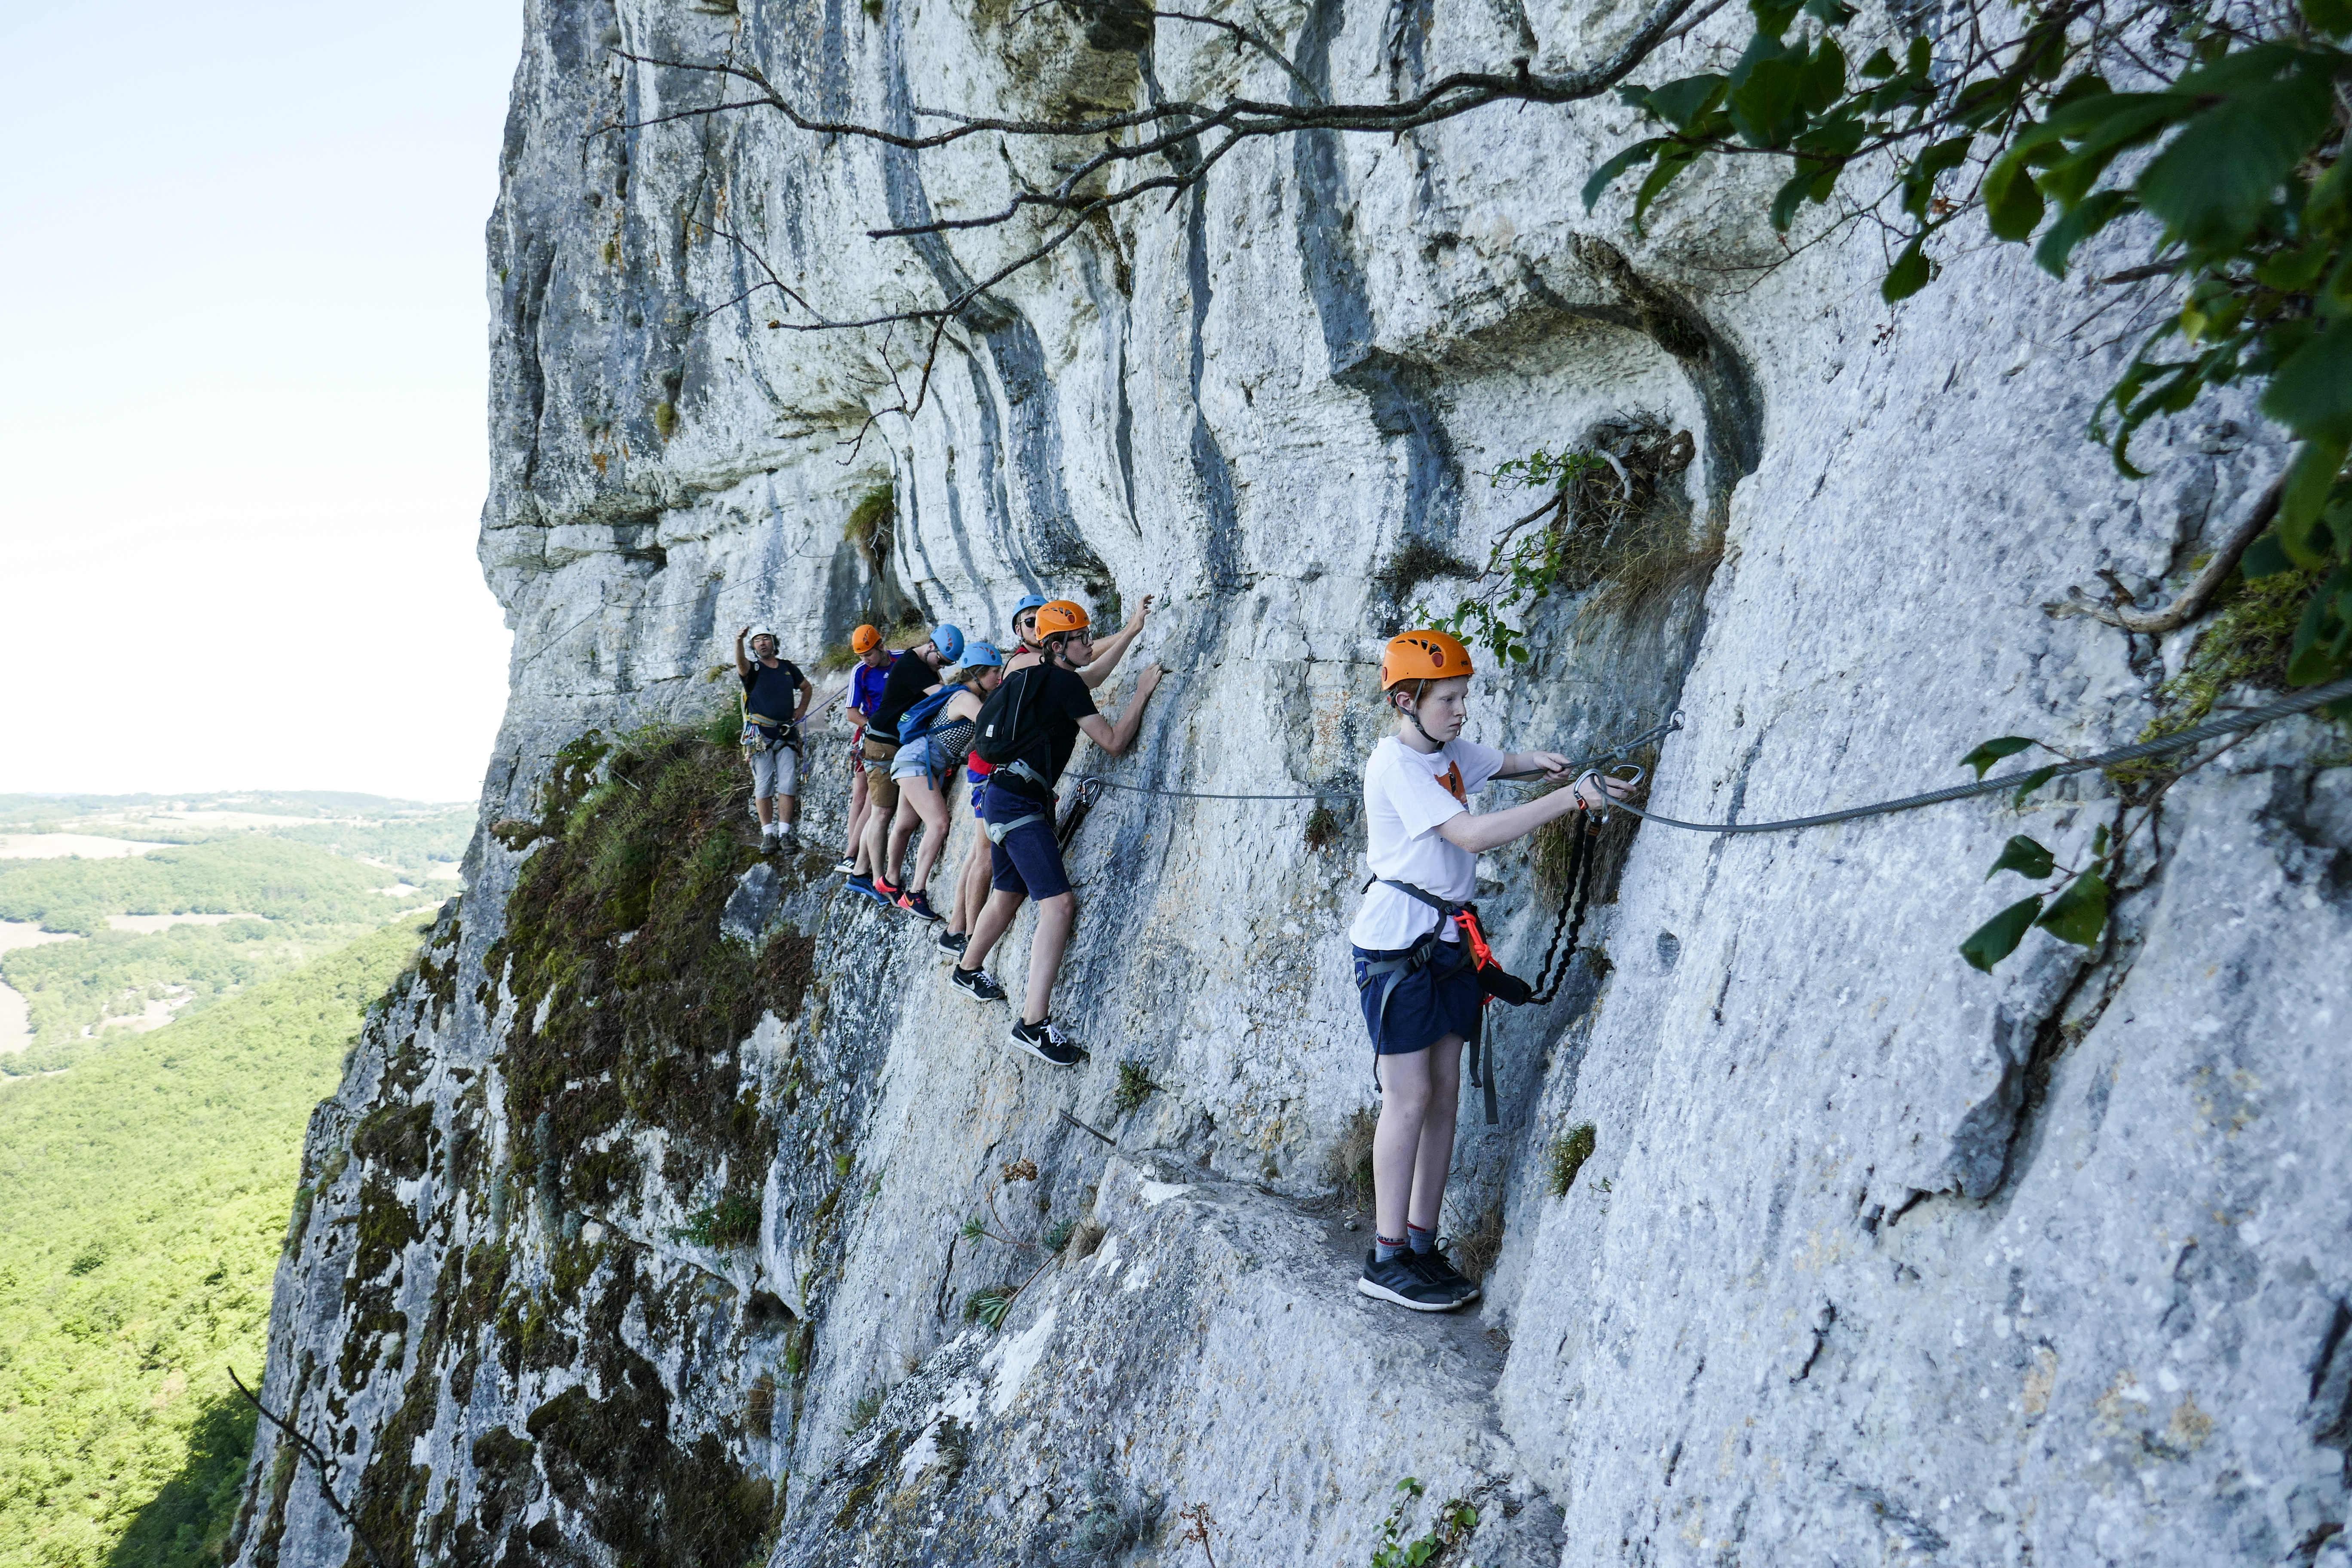 Via Ferrata Roc d'Anglars - Saint-Antonin-Noble-Val